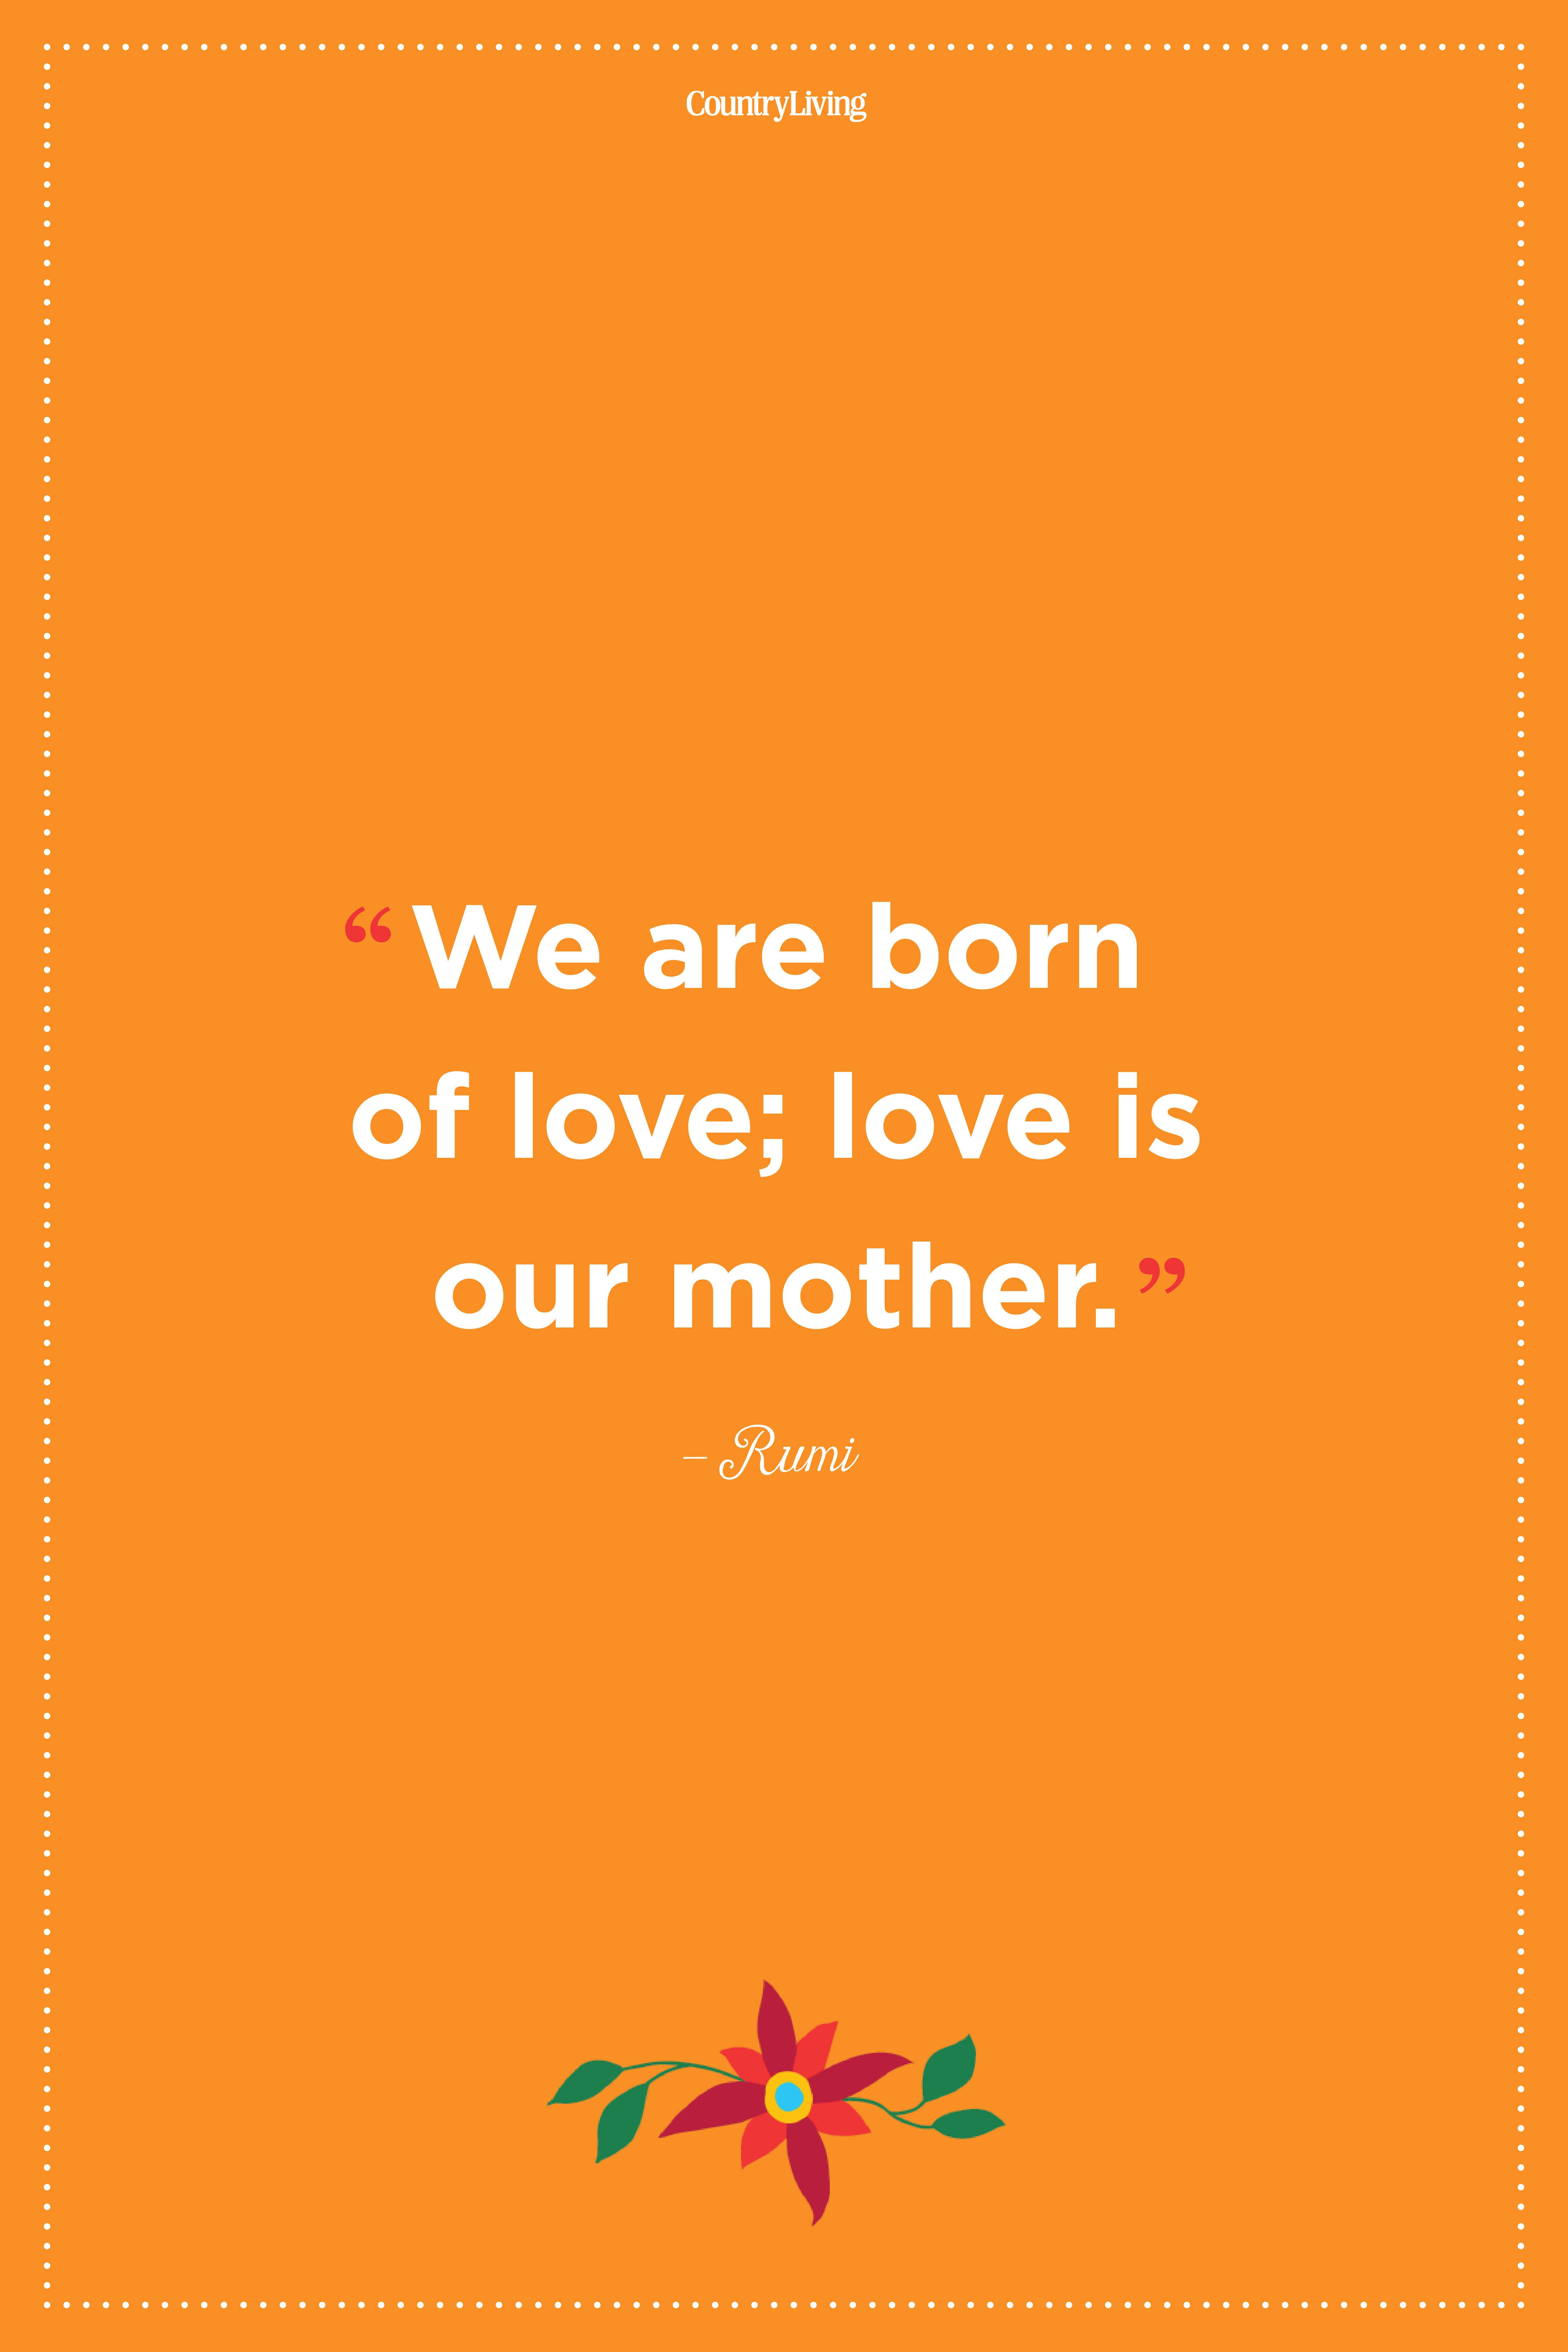 60 Best Mother And Daughter Quotes Relationship Between Mom And Daughter Short Quotes